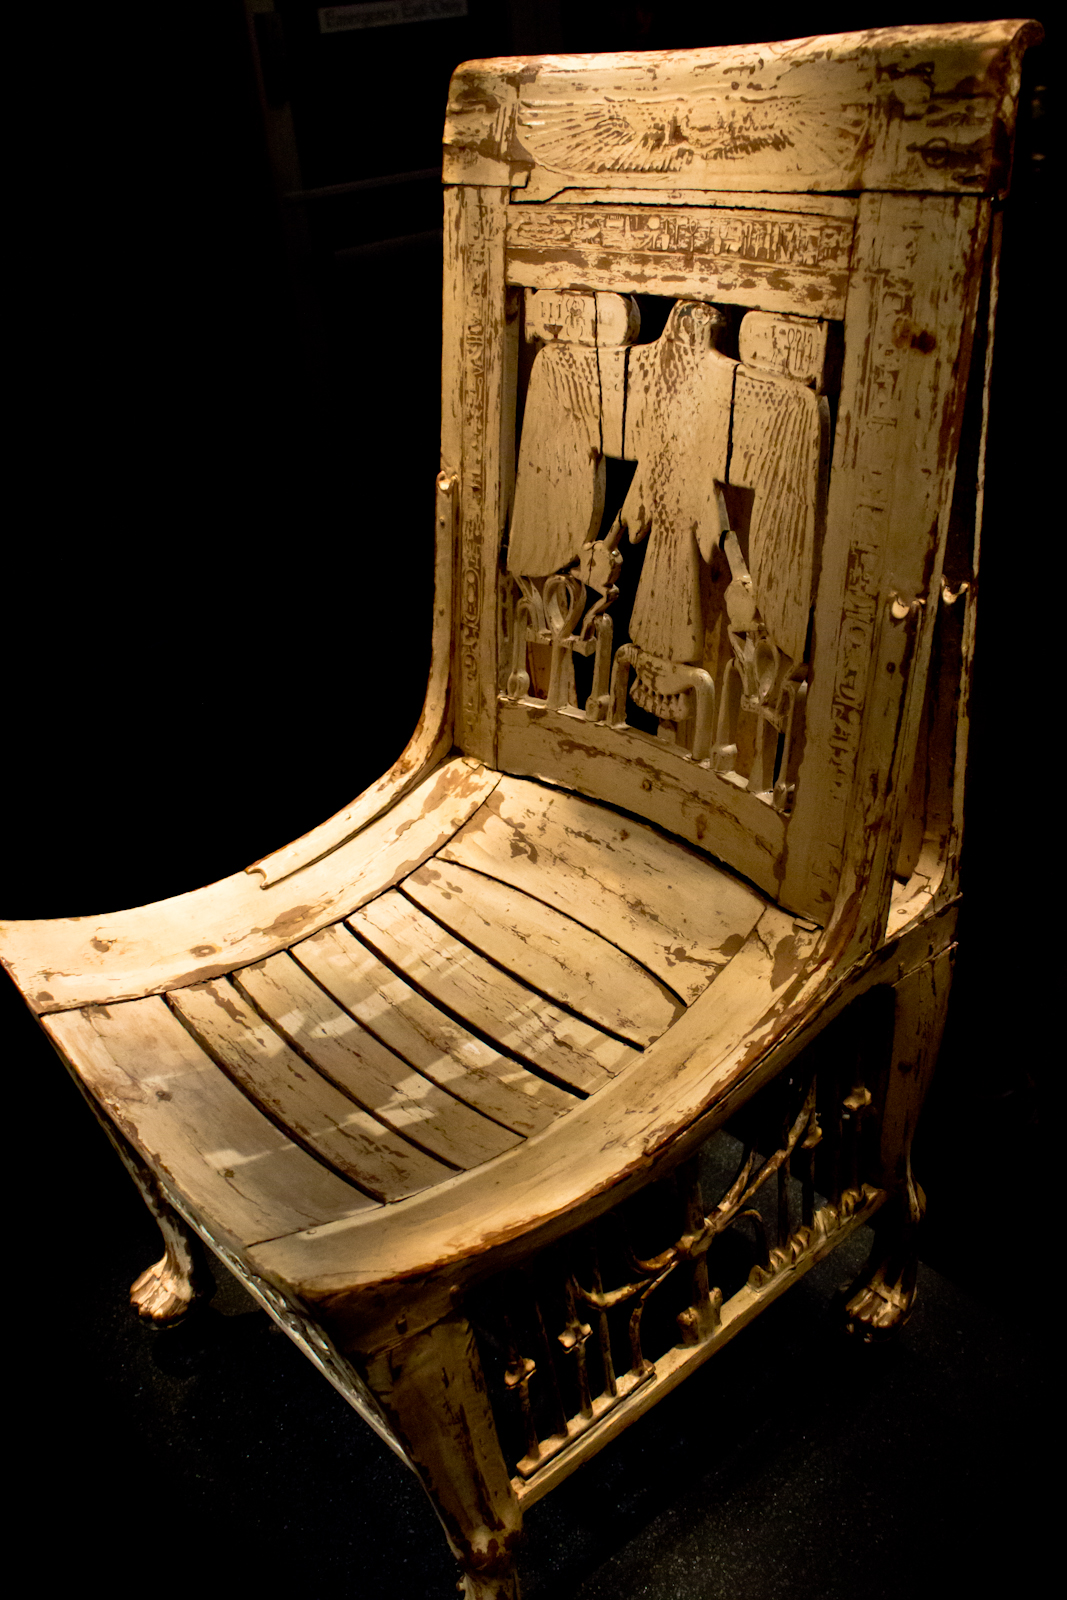 the chair king stand deer photographs of some historical and archeological artifacts